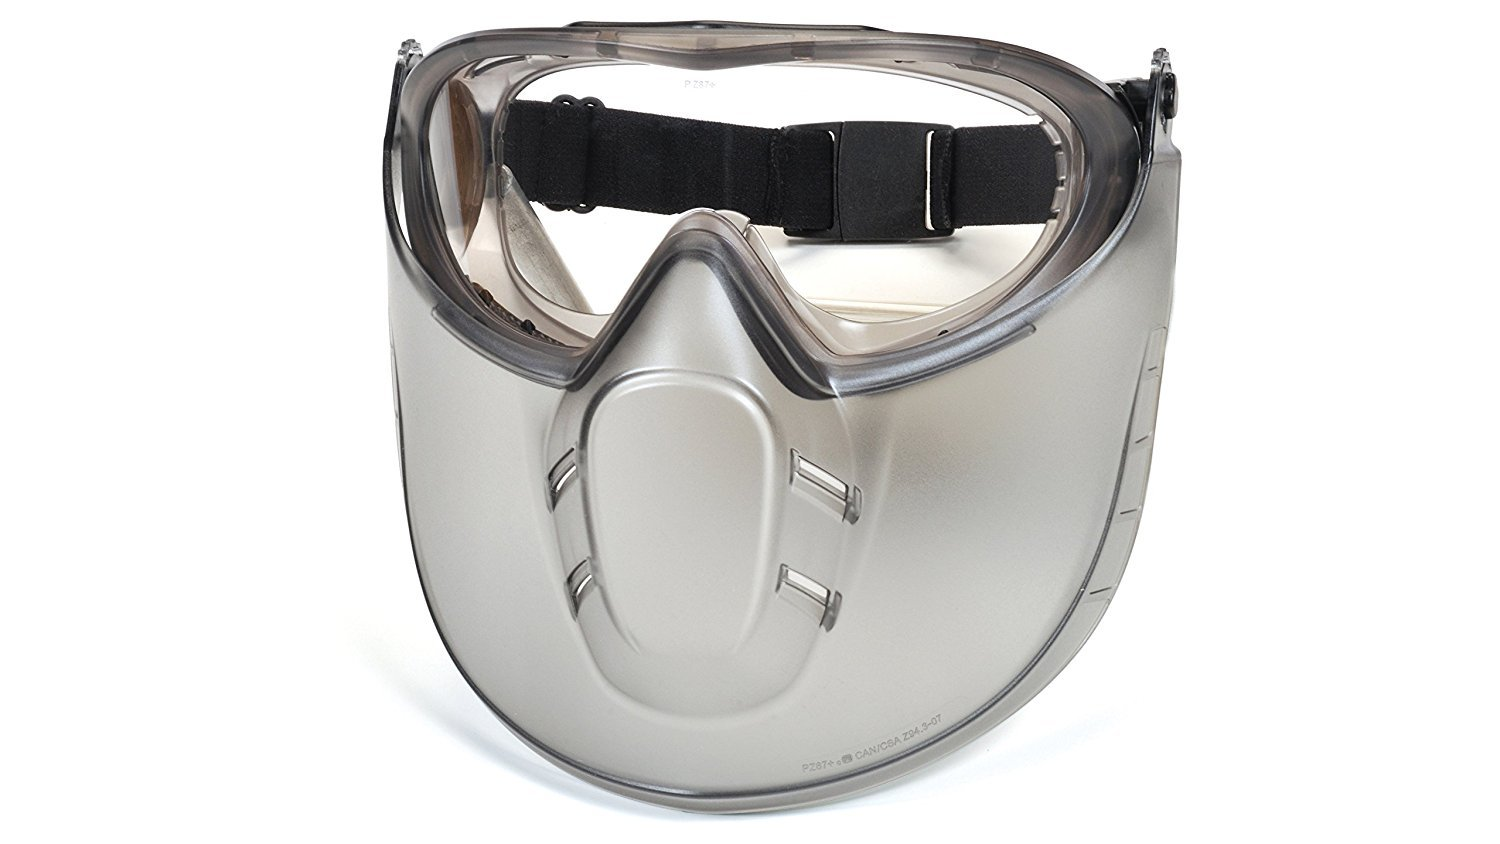 Pyramex Capstone Direct/Indirect Goggle with Faceshield Attachment GG504TShield (6 Pack) by Pyramex (Image #2)